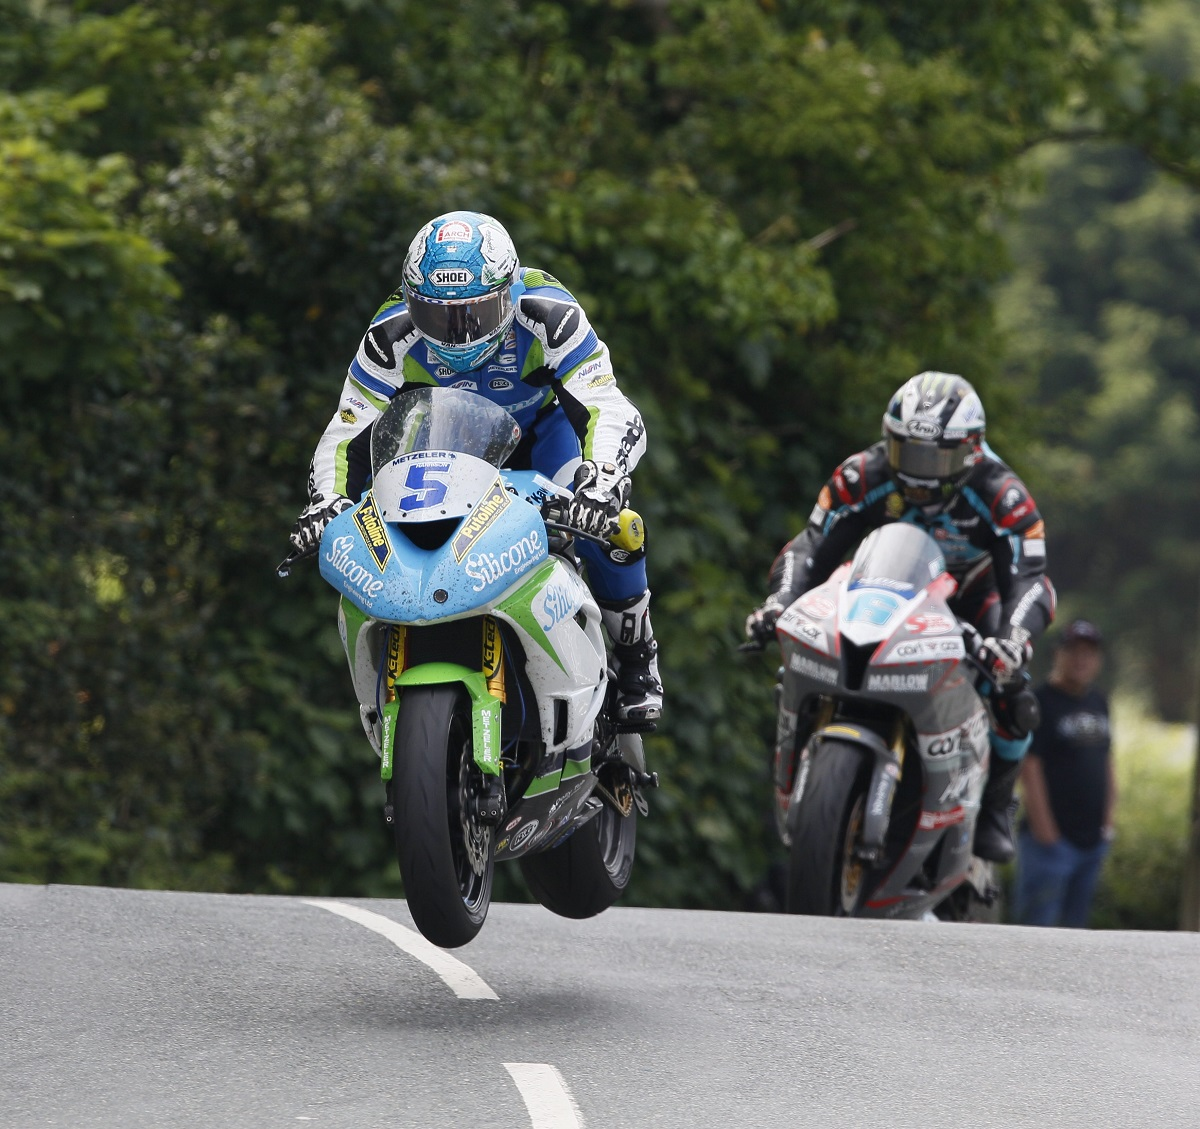 Bradford's Dean Harrison is airborne on his way to finishing third in the Superstock race at the Isle of Man TT Picture: chrissipix